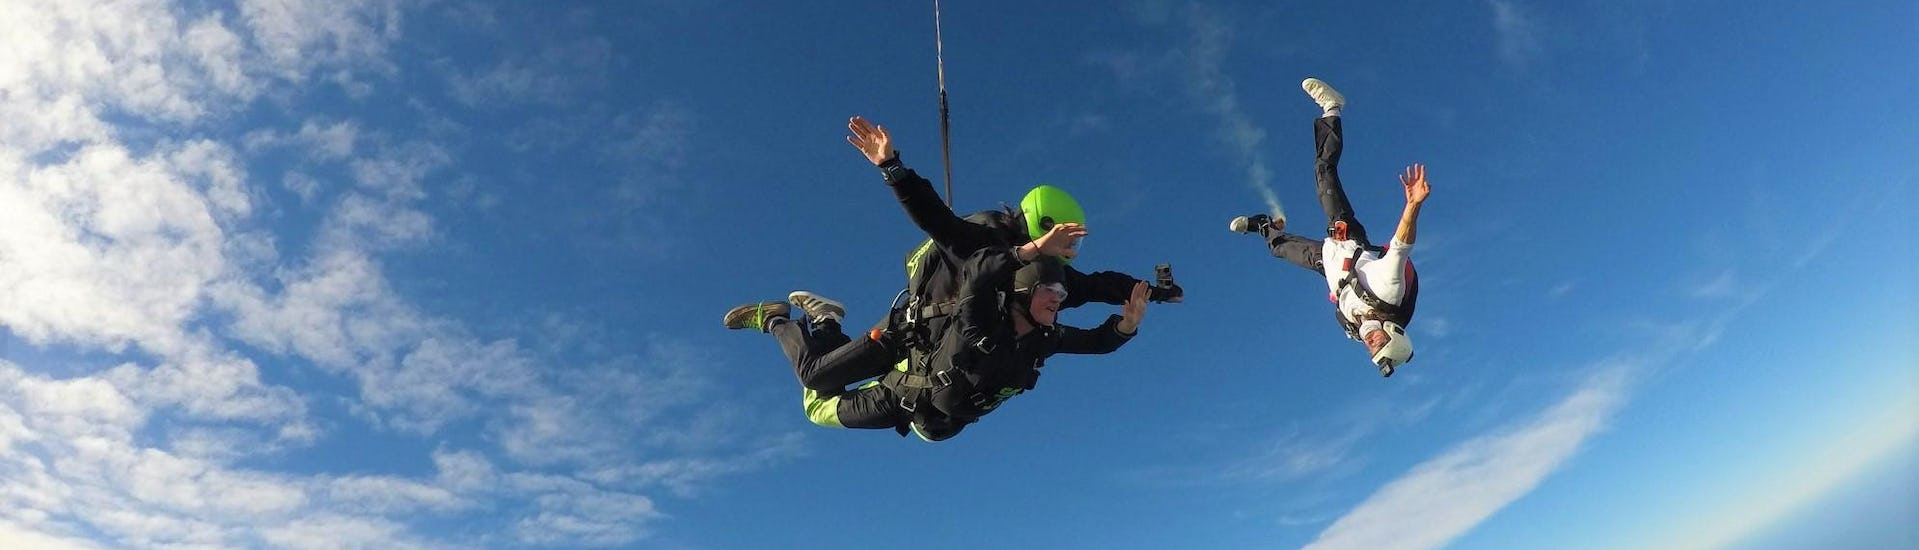 Tandem Skydive near Christchurch from 6,000ft